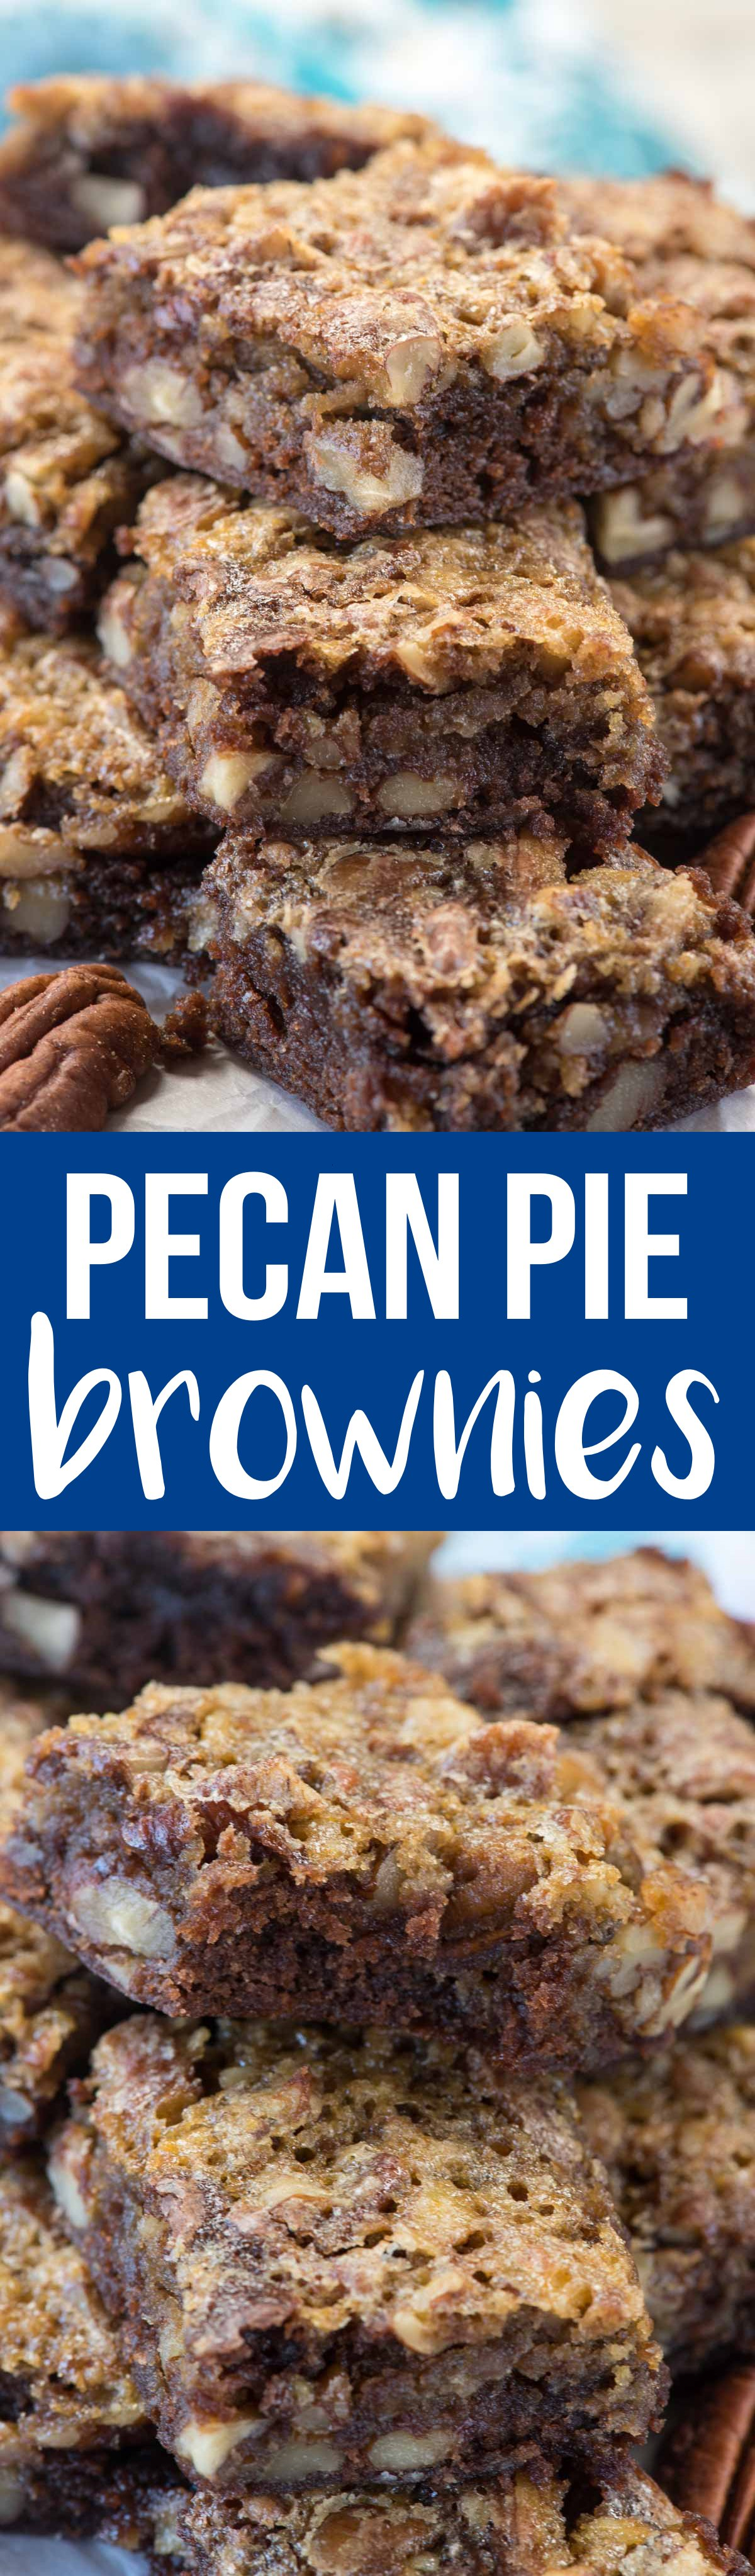 Pecan Pie Brownies are an easy way to have your pecan pie and your brownies too! These are great for a party or just because you love gooey chocolate brownies and the perfect pecan pie!